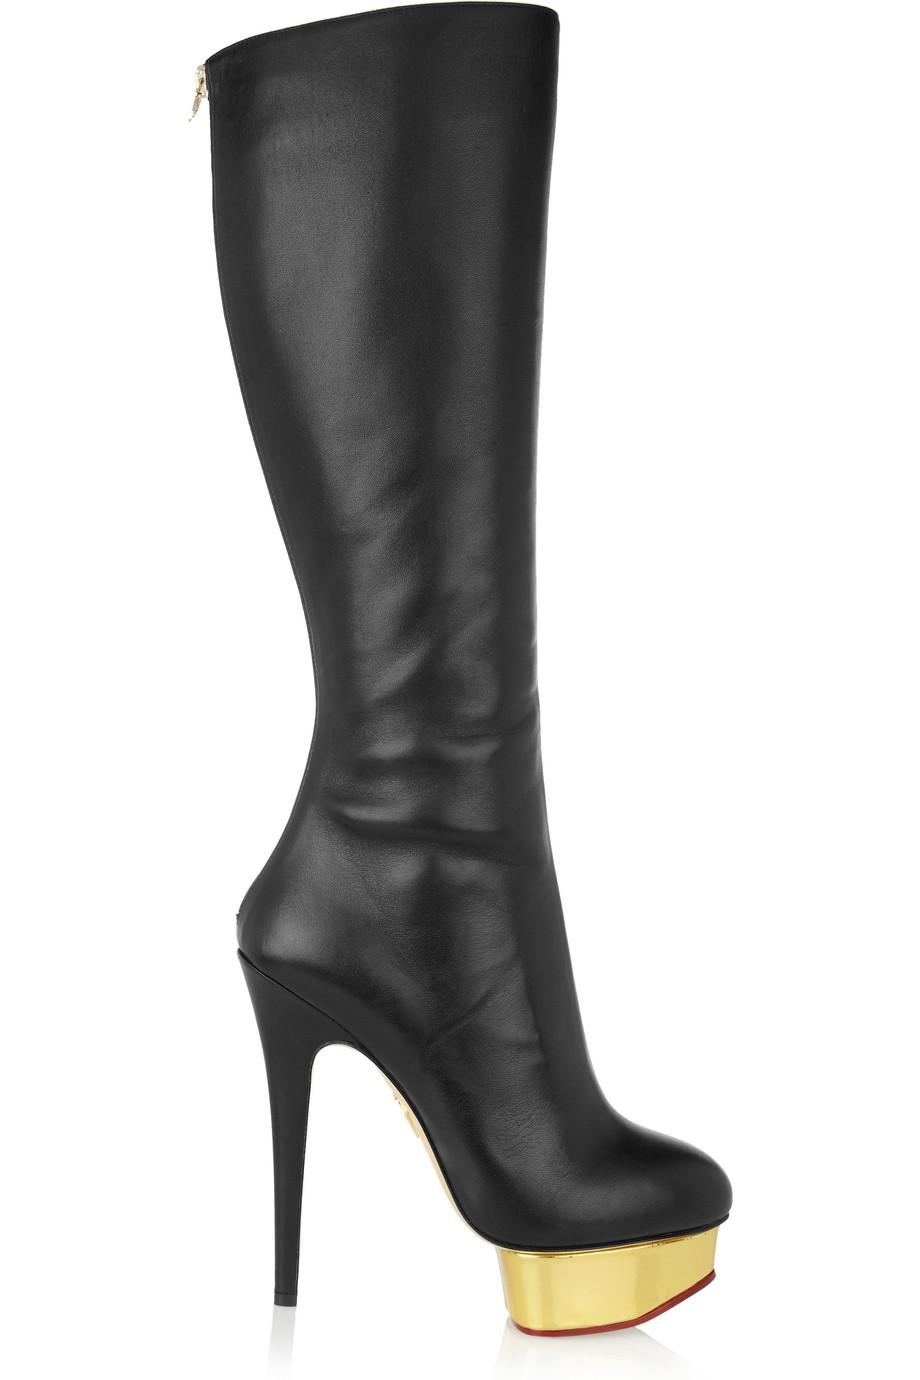 Black Knee High Boots For Women Gold Platform Boots Thin Heels ...